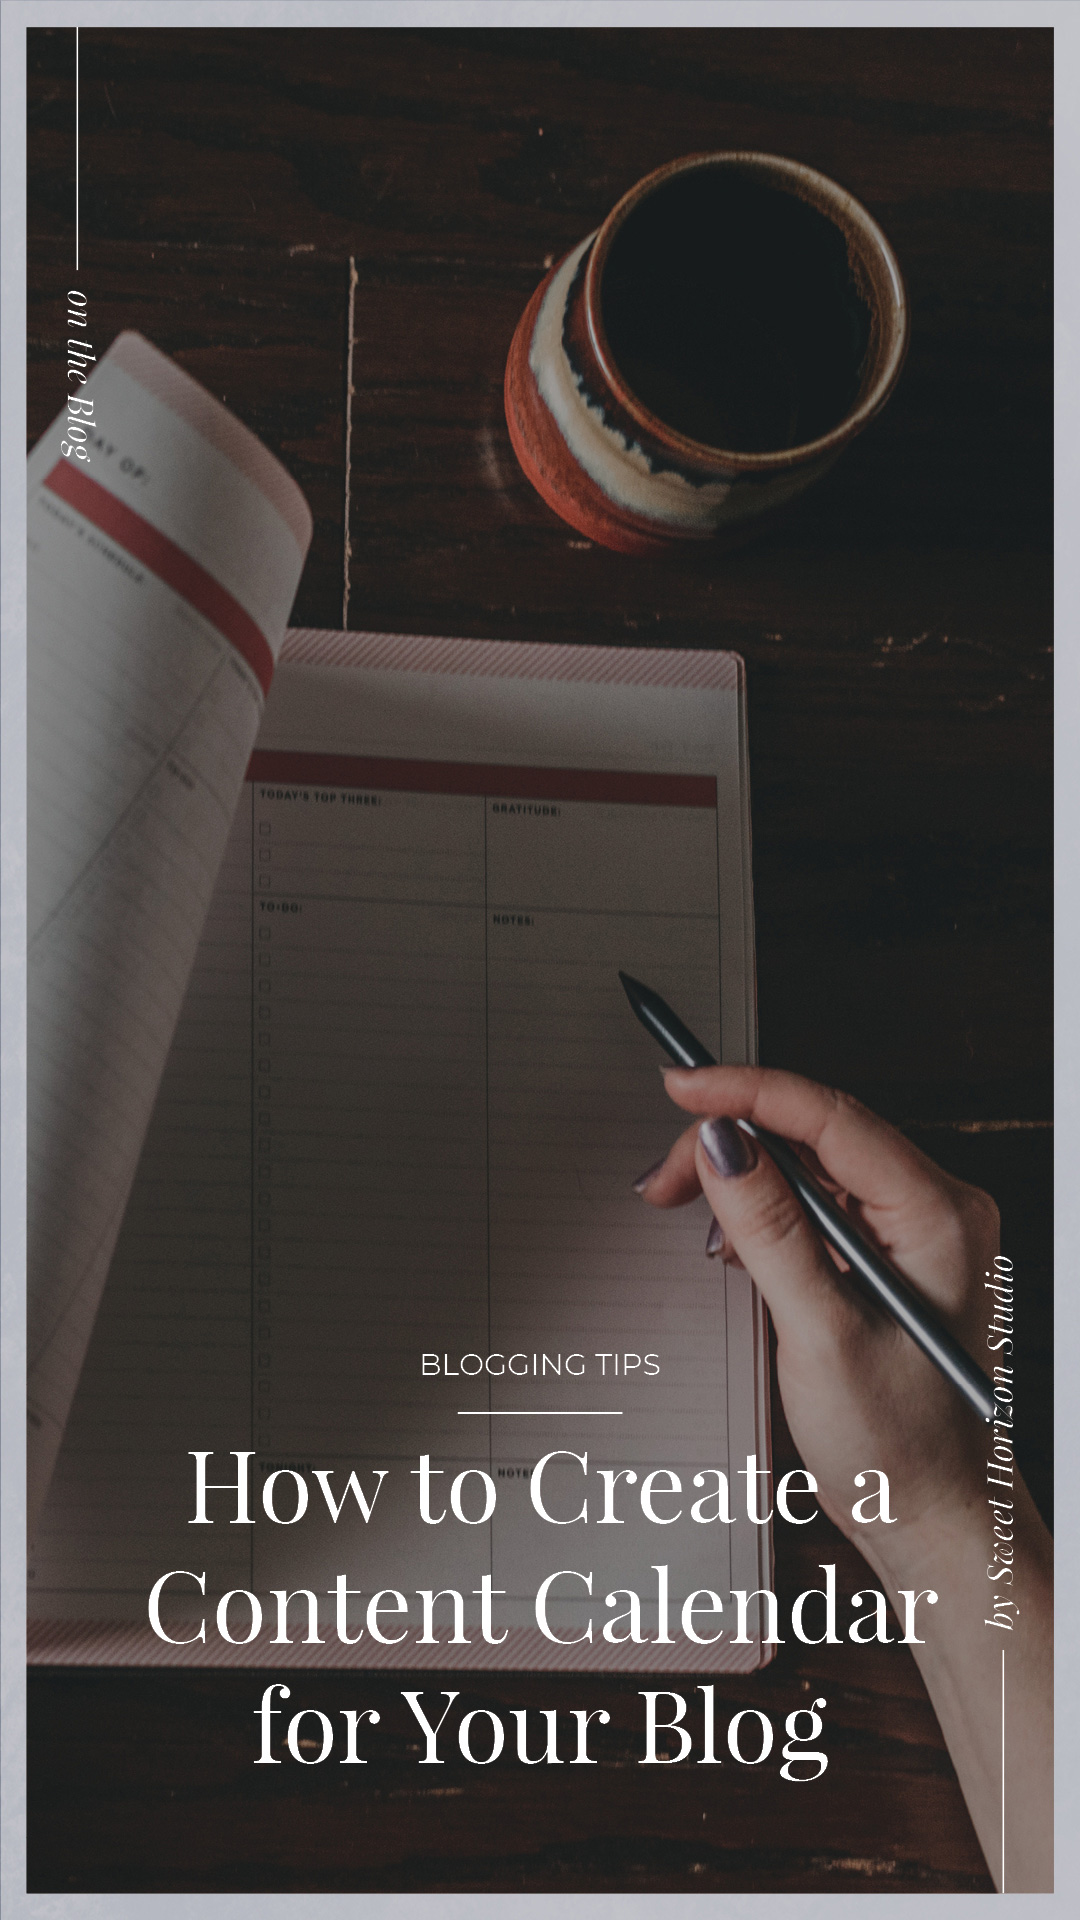 How to Create a Content Calendar for Your Blog from www.sweethorizonblog.com